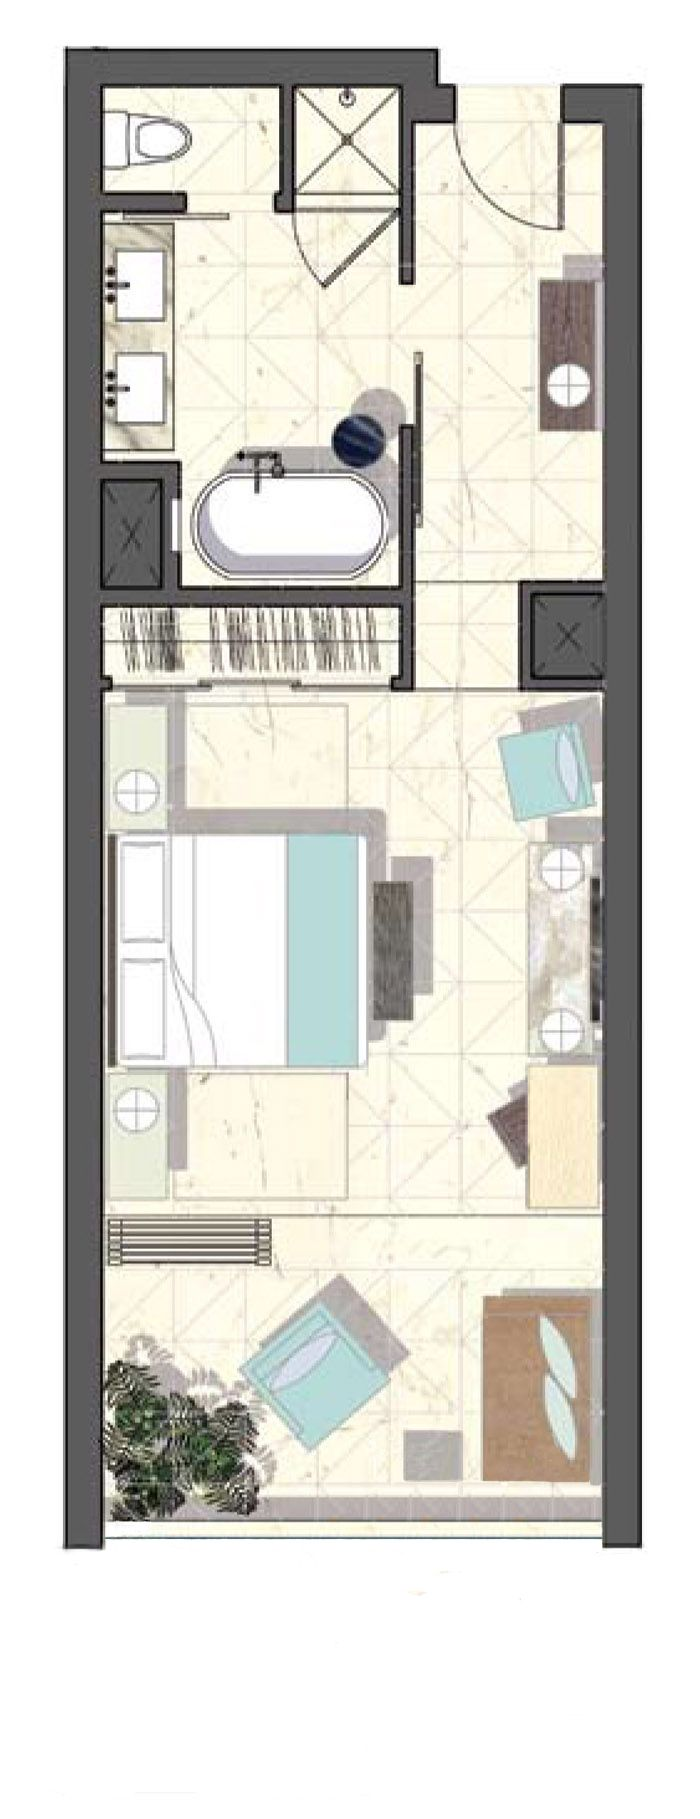 Hotel Room Plans Designs viceroy hotel layout - good design for a room with a balcony